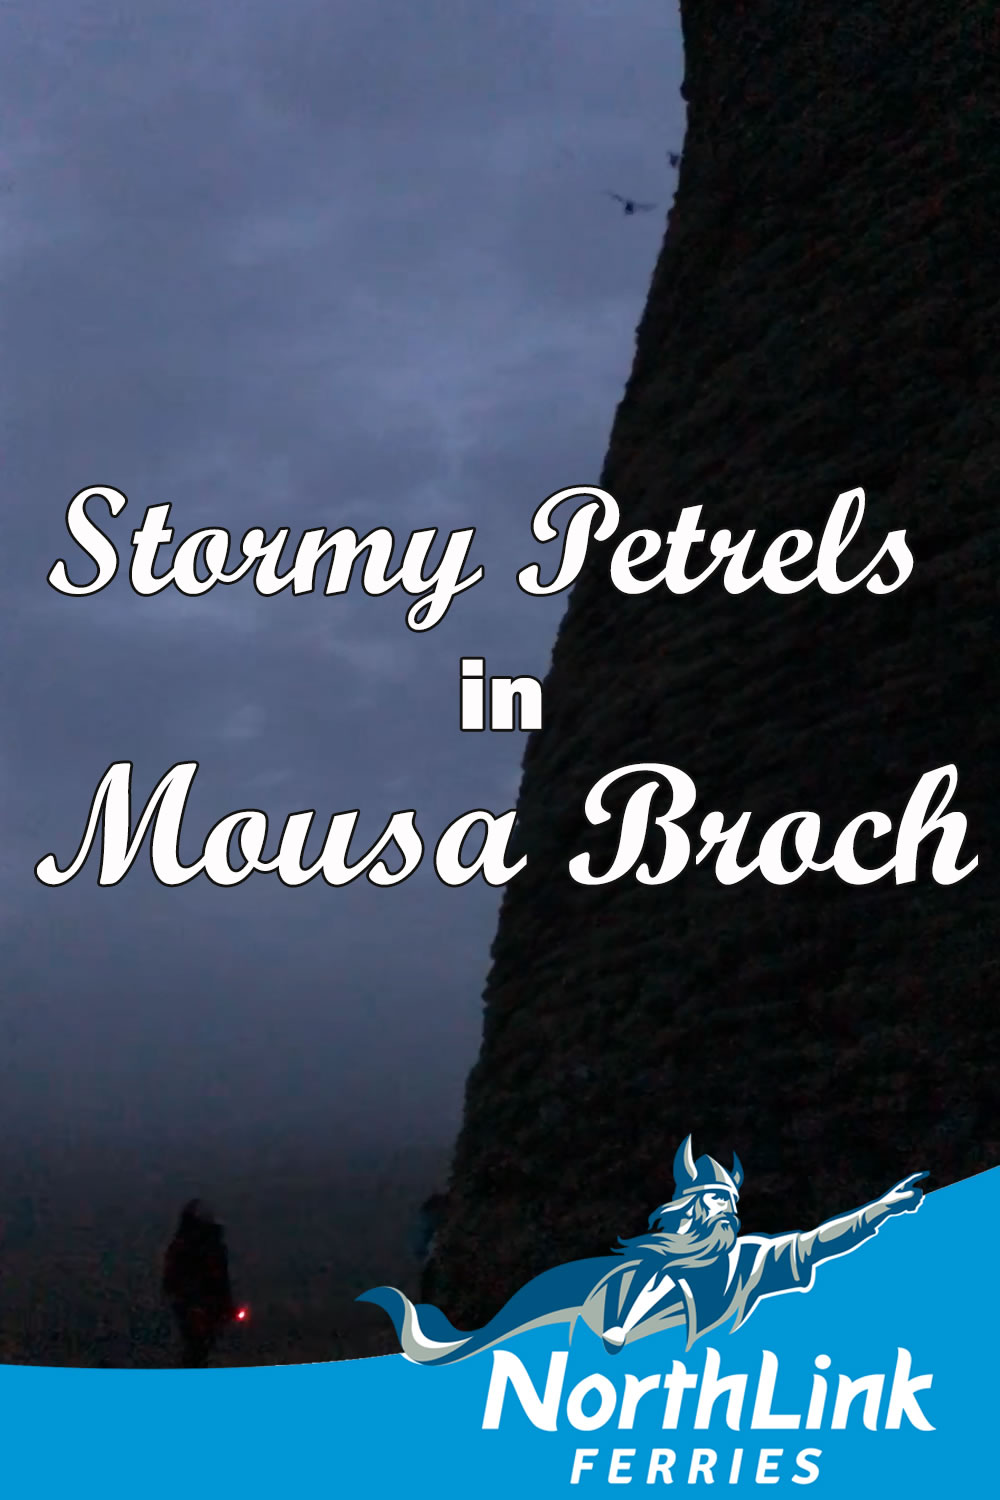 Stormy Petrels in Mousa Broch